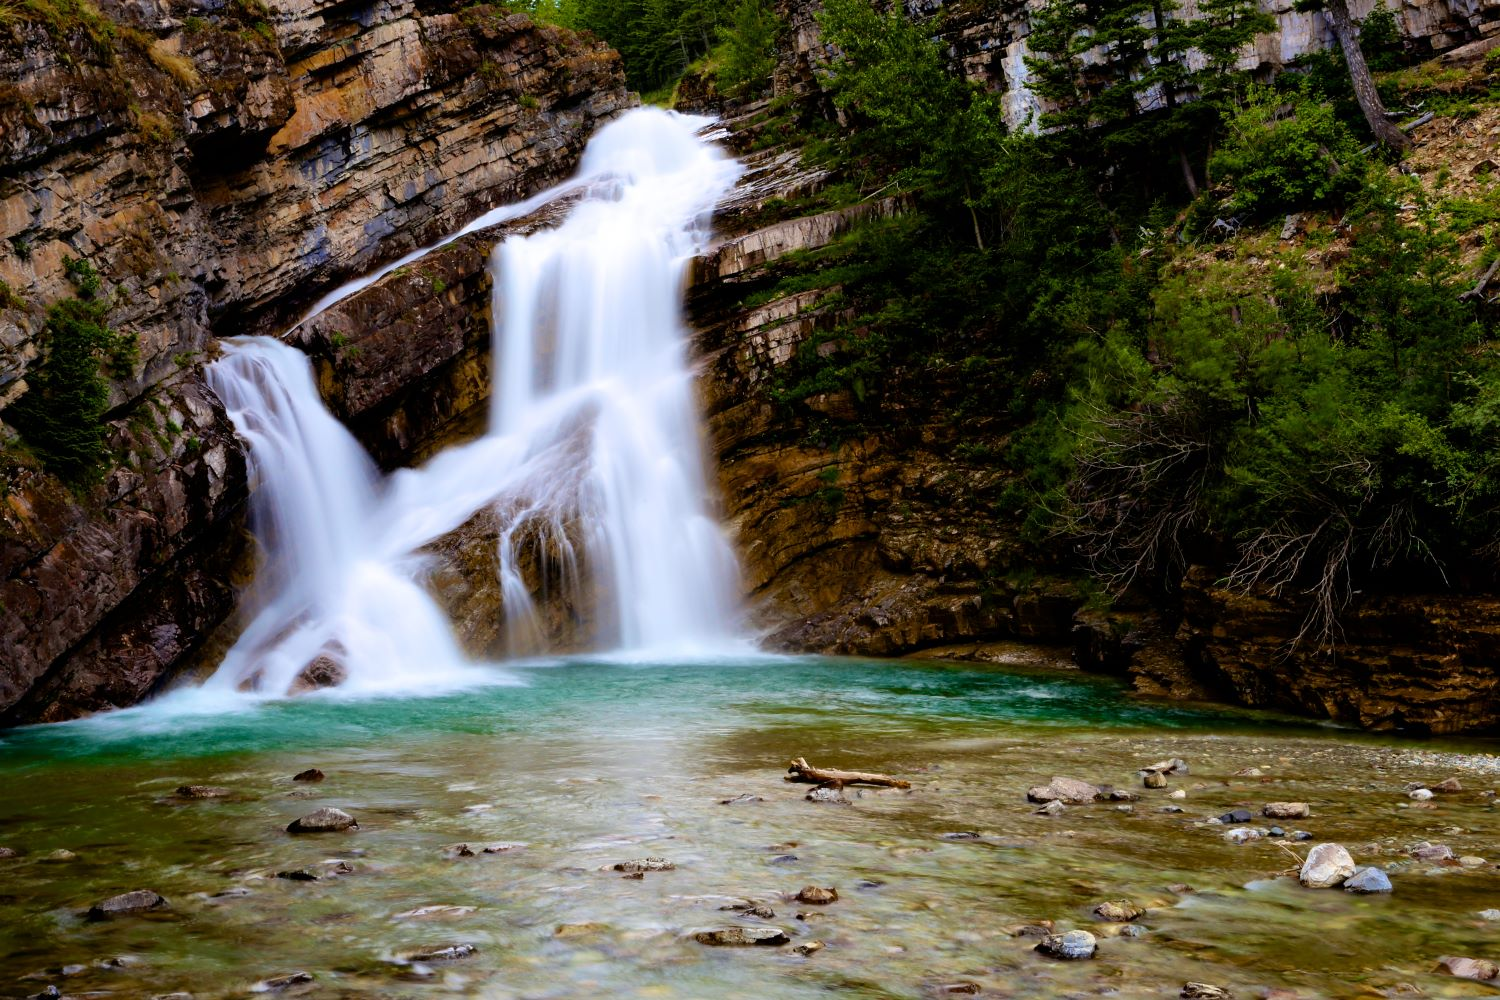 10 of the most picturesque waterfalls in Alberta